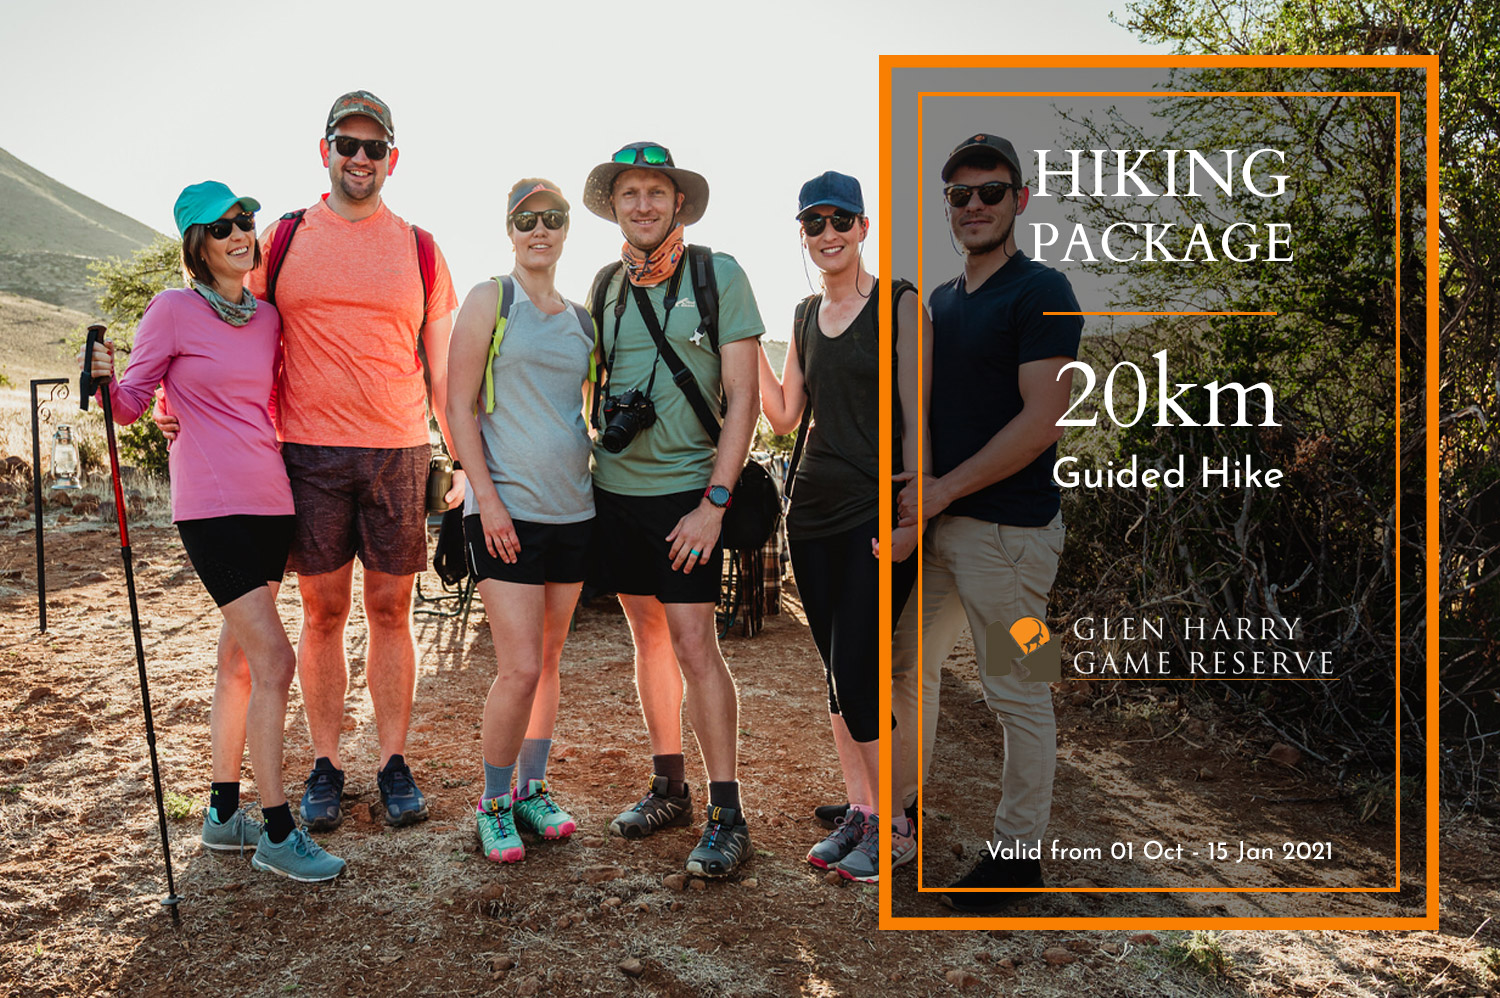 Hiking-package-special